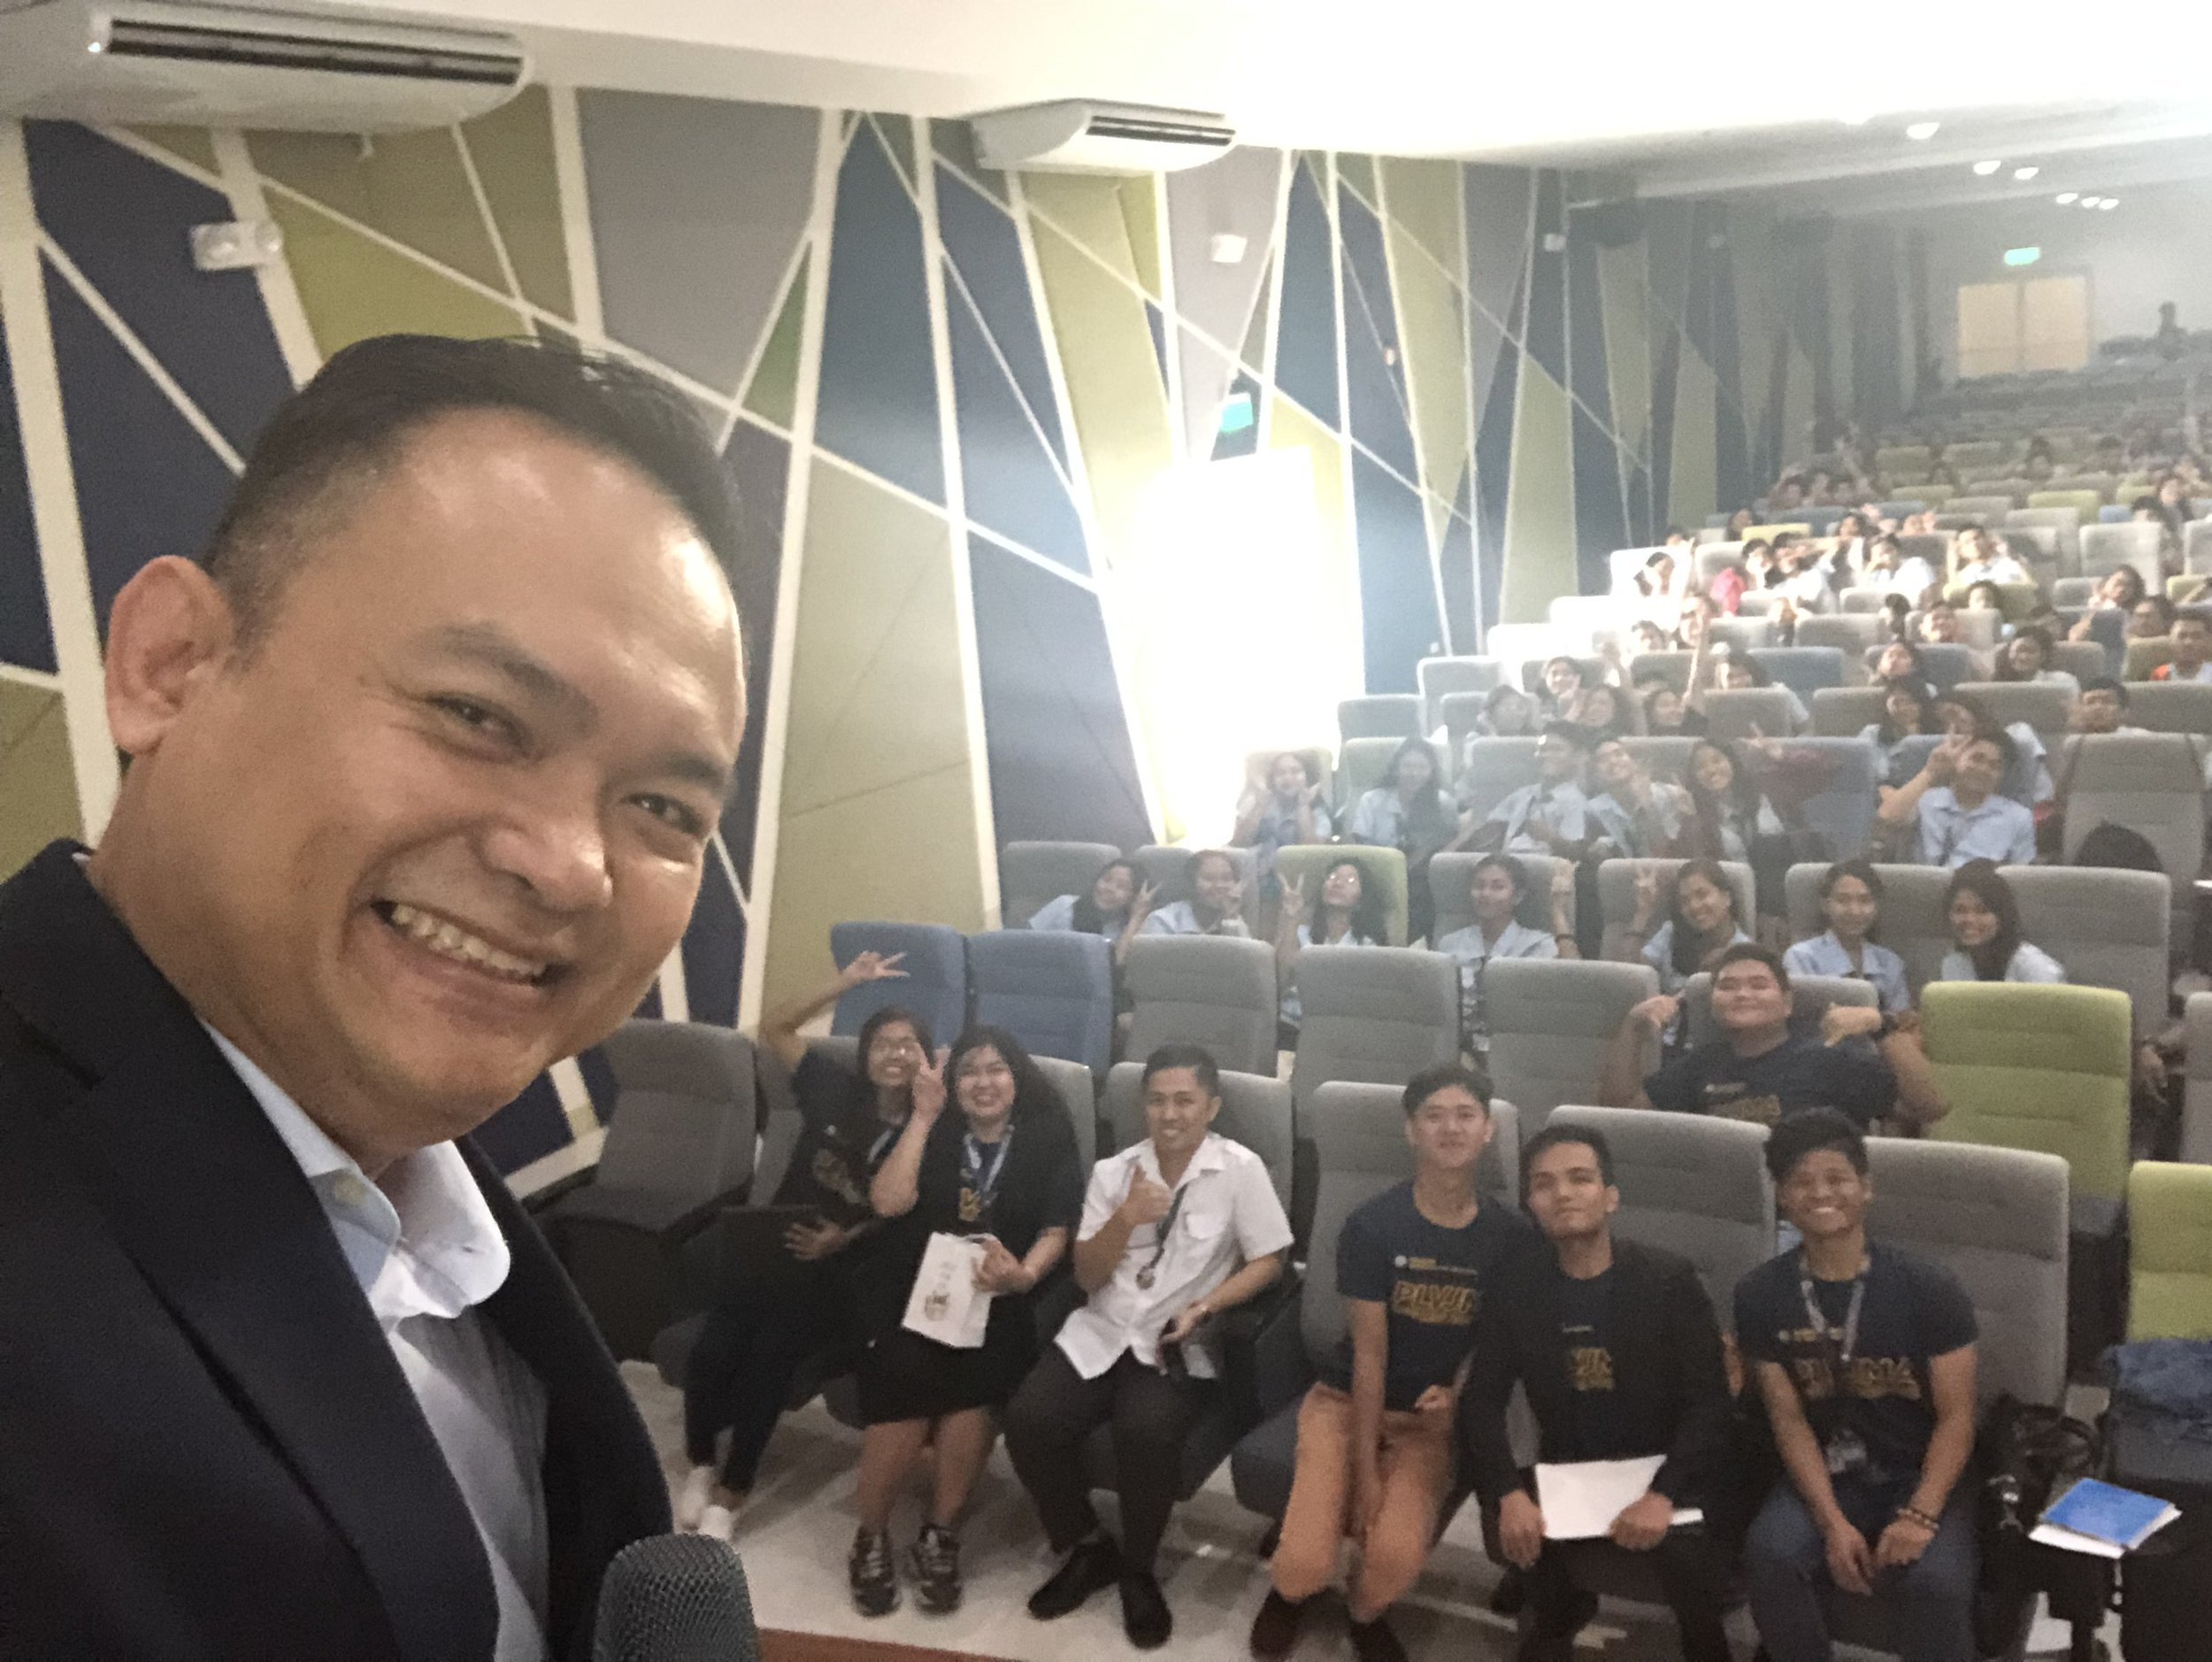 We hope someday when we meet again, will be able to give our gratitude to all the advise you shared during the seminar. You are such an inspiration to us sir Eric Manalo. - Pamantasan ng Lungsod ng Valenzuela, Junior Marketing Association 2019. -